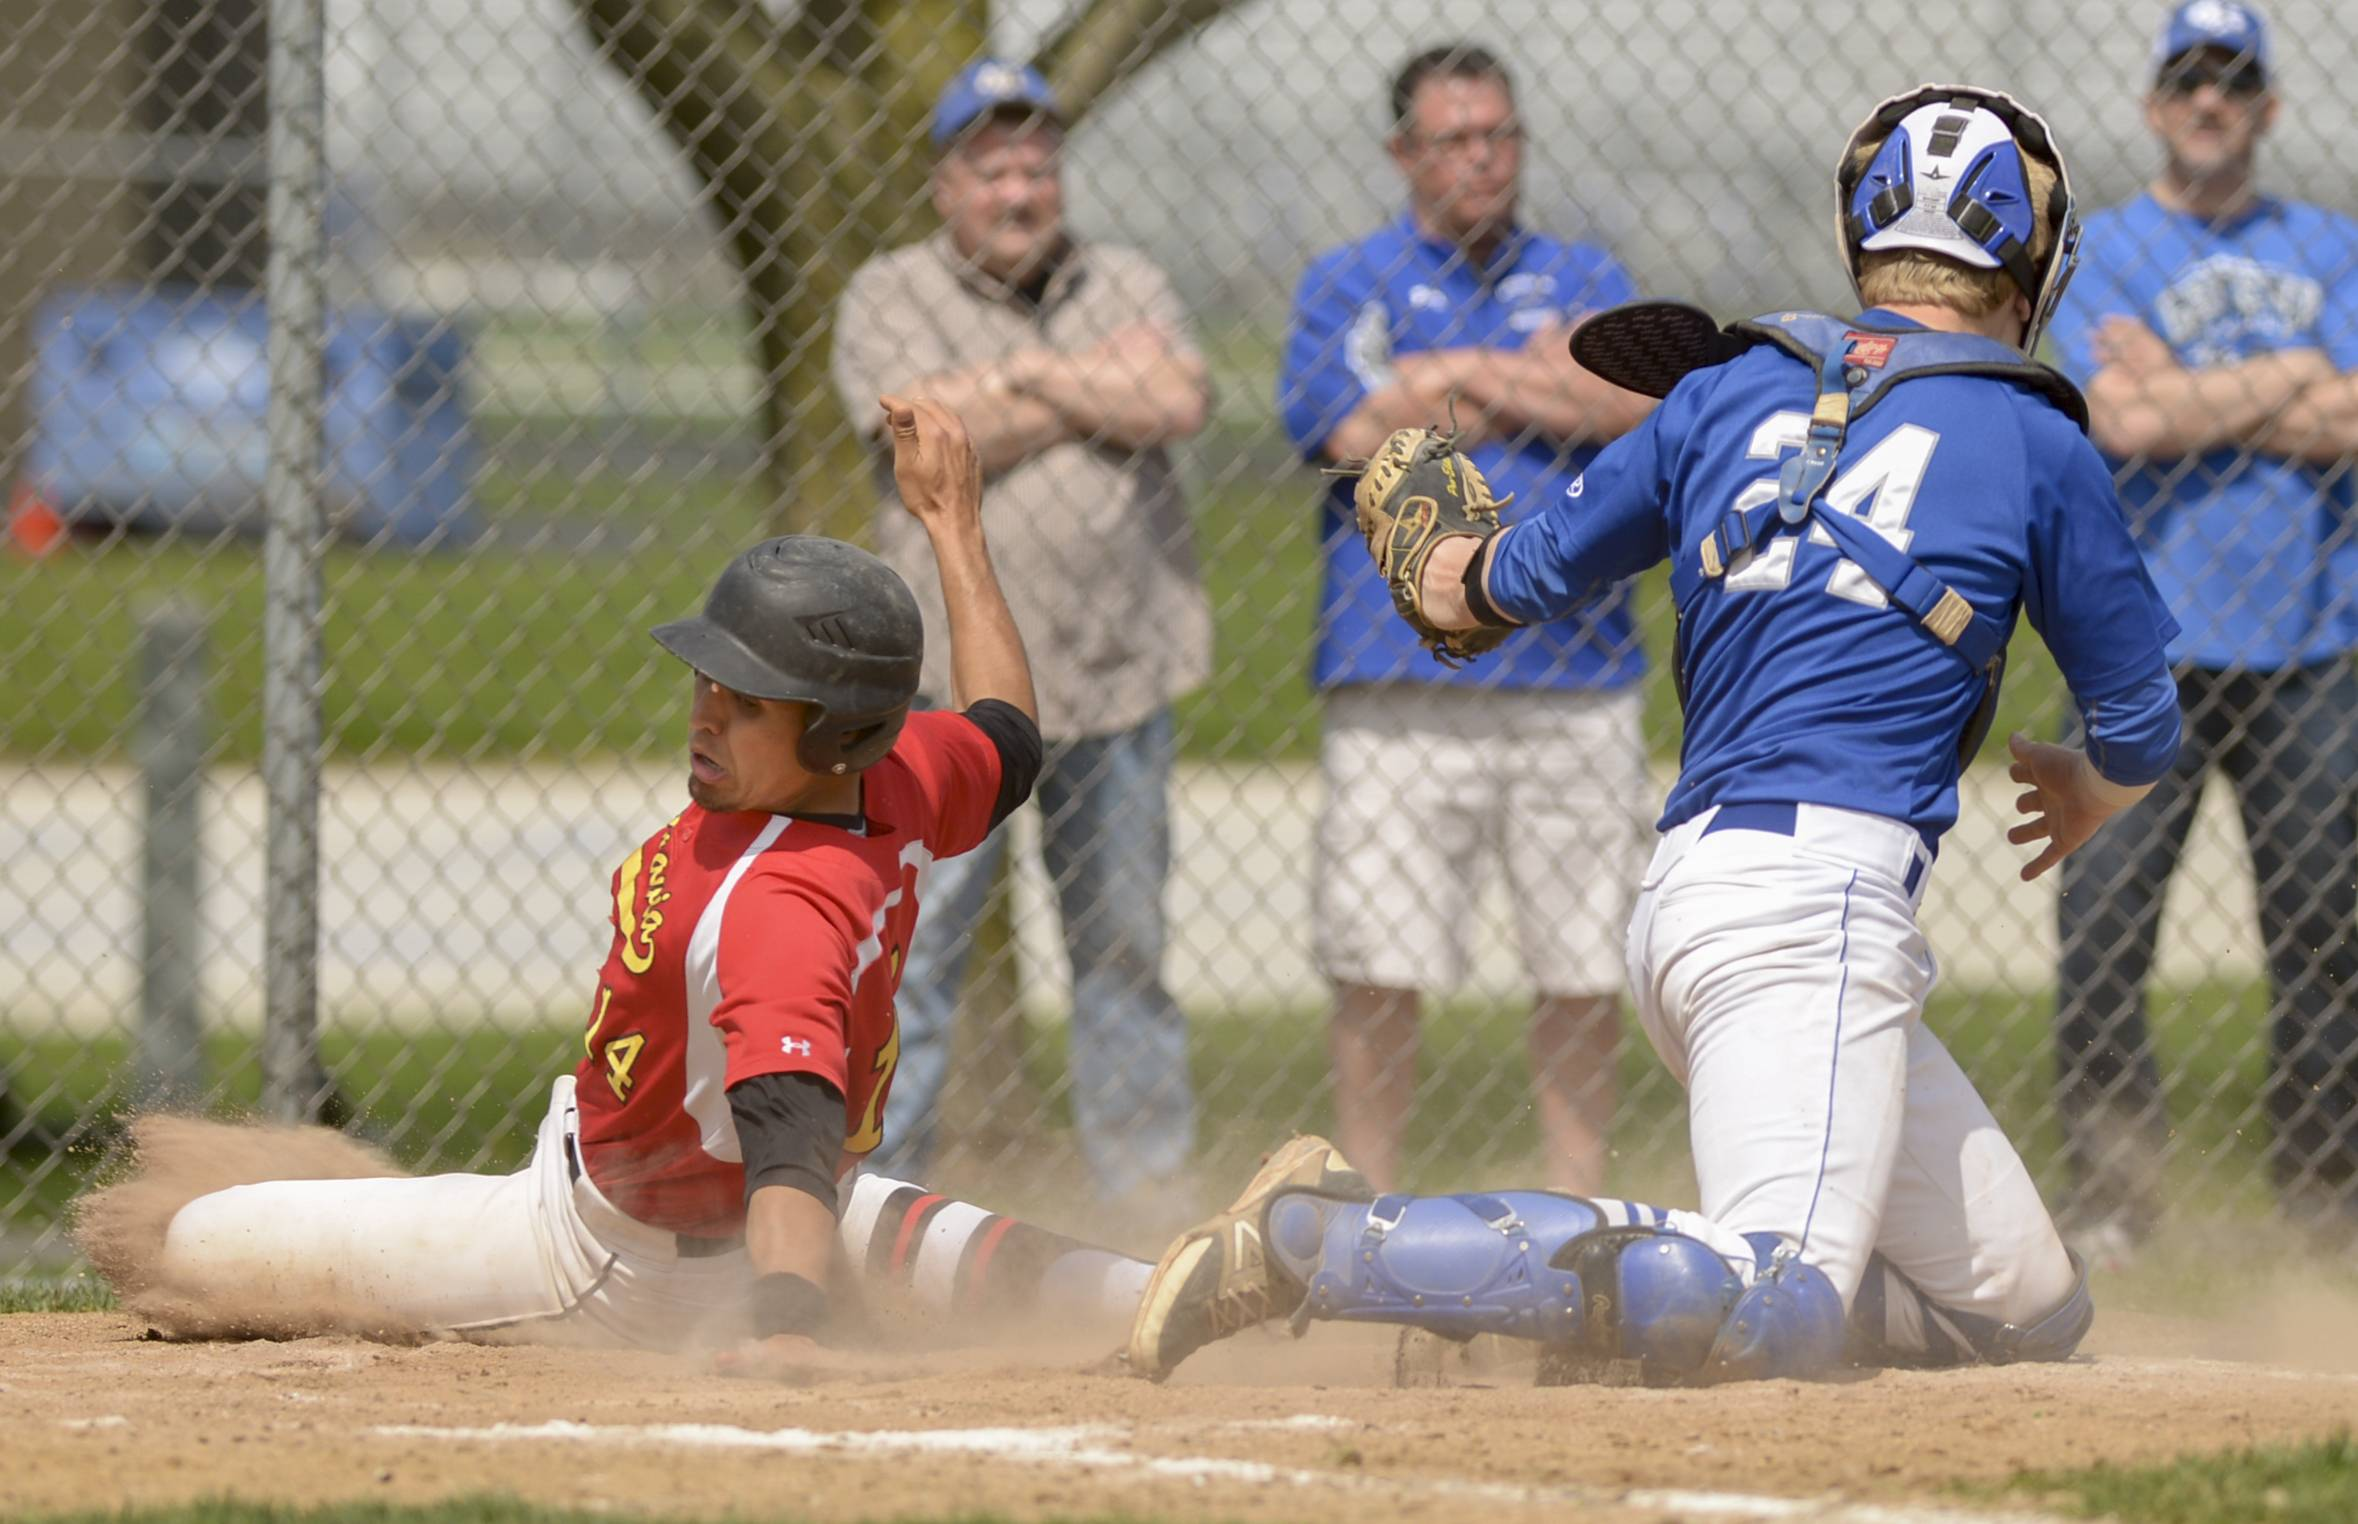 Batavia's Micah Coffey slides safely into home past Geneva's Nate Montgomery to score the second of his team's five runs in the third inning in Geneva Saturday.